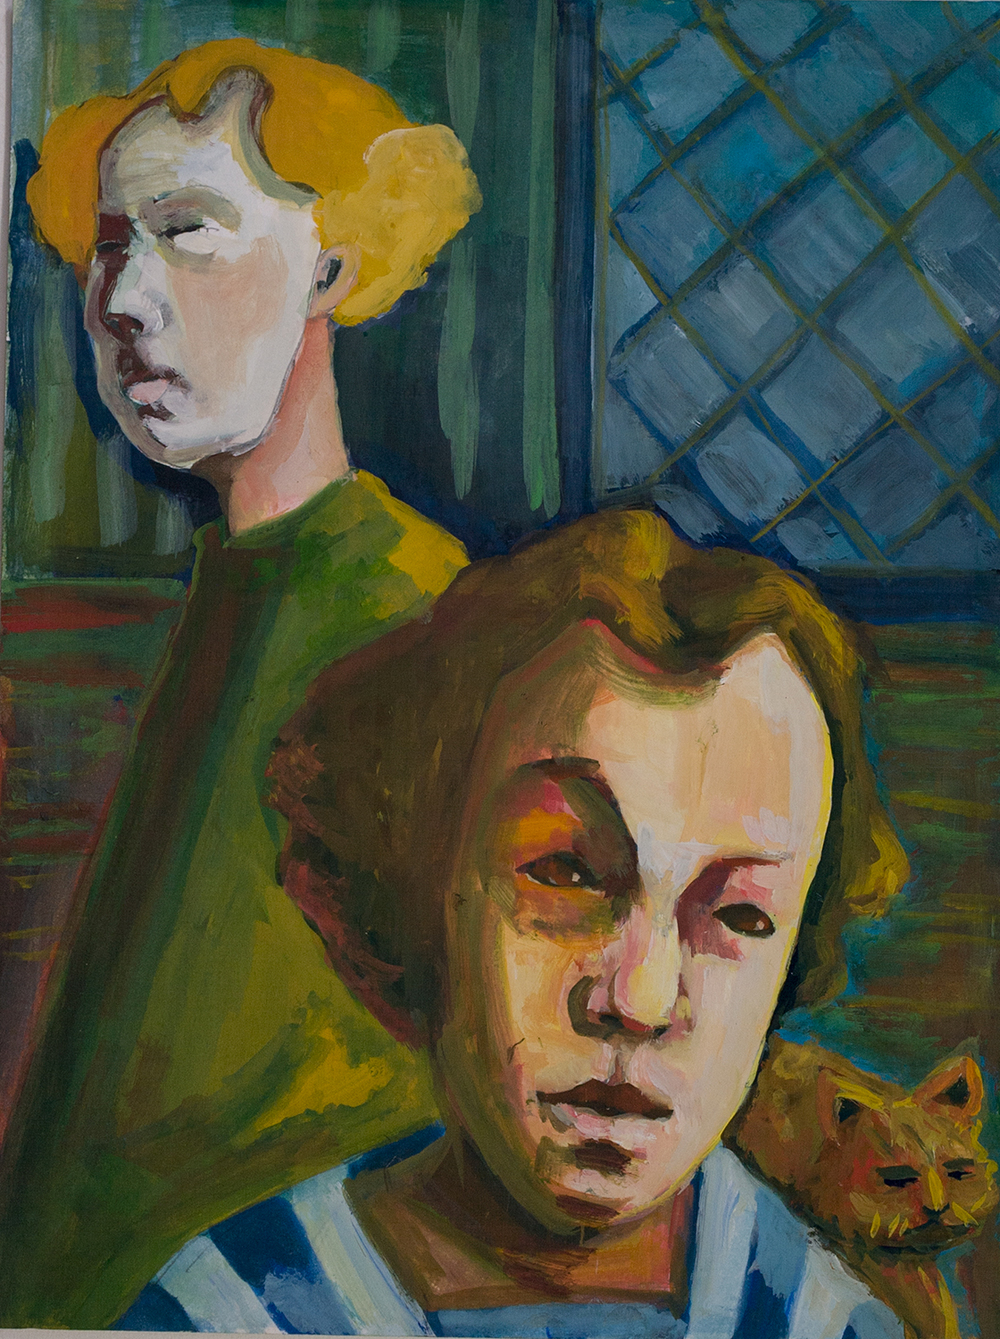 Study - Two figures and a cat